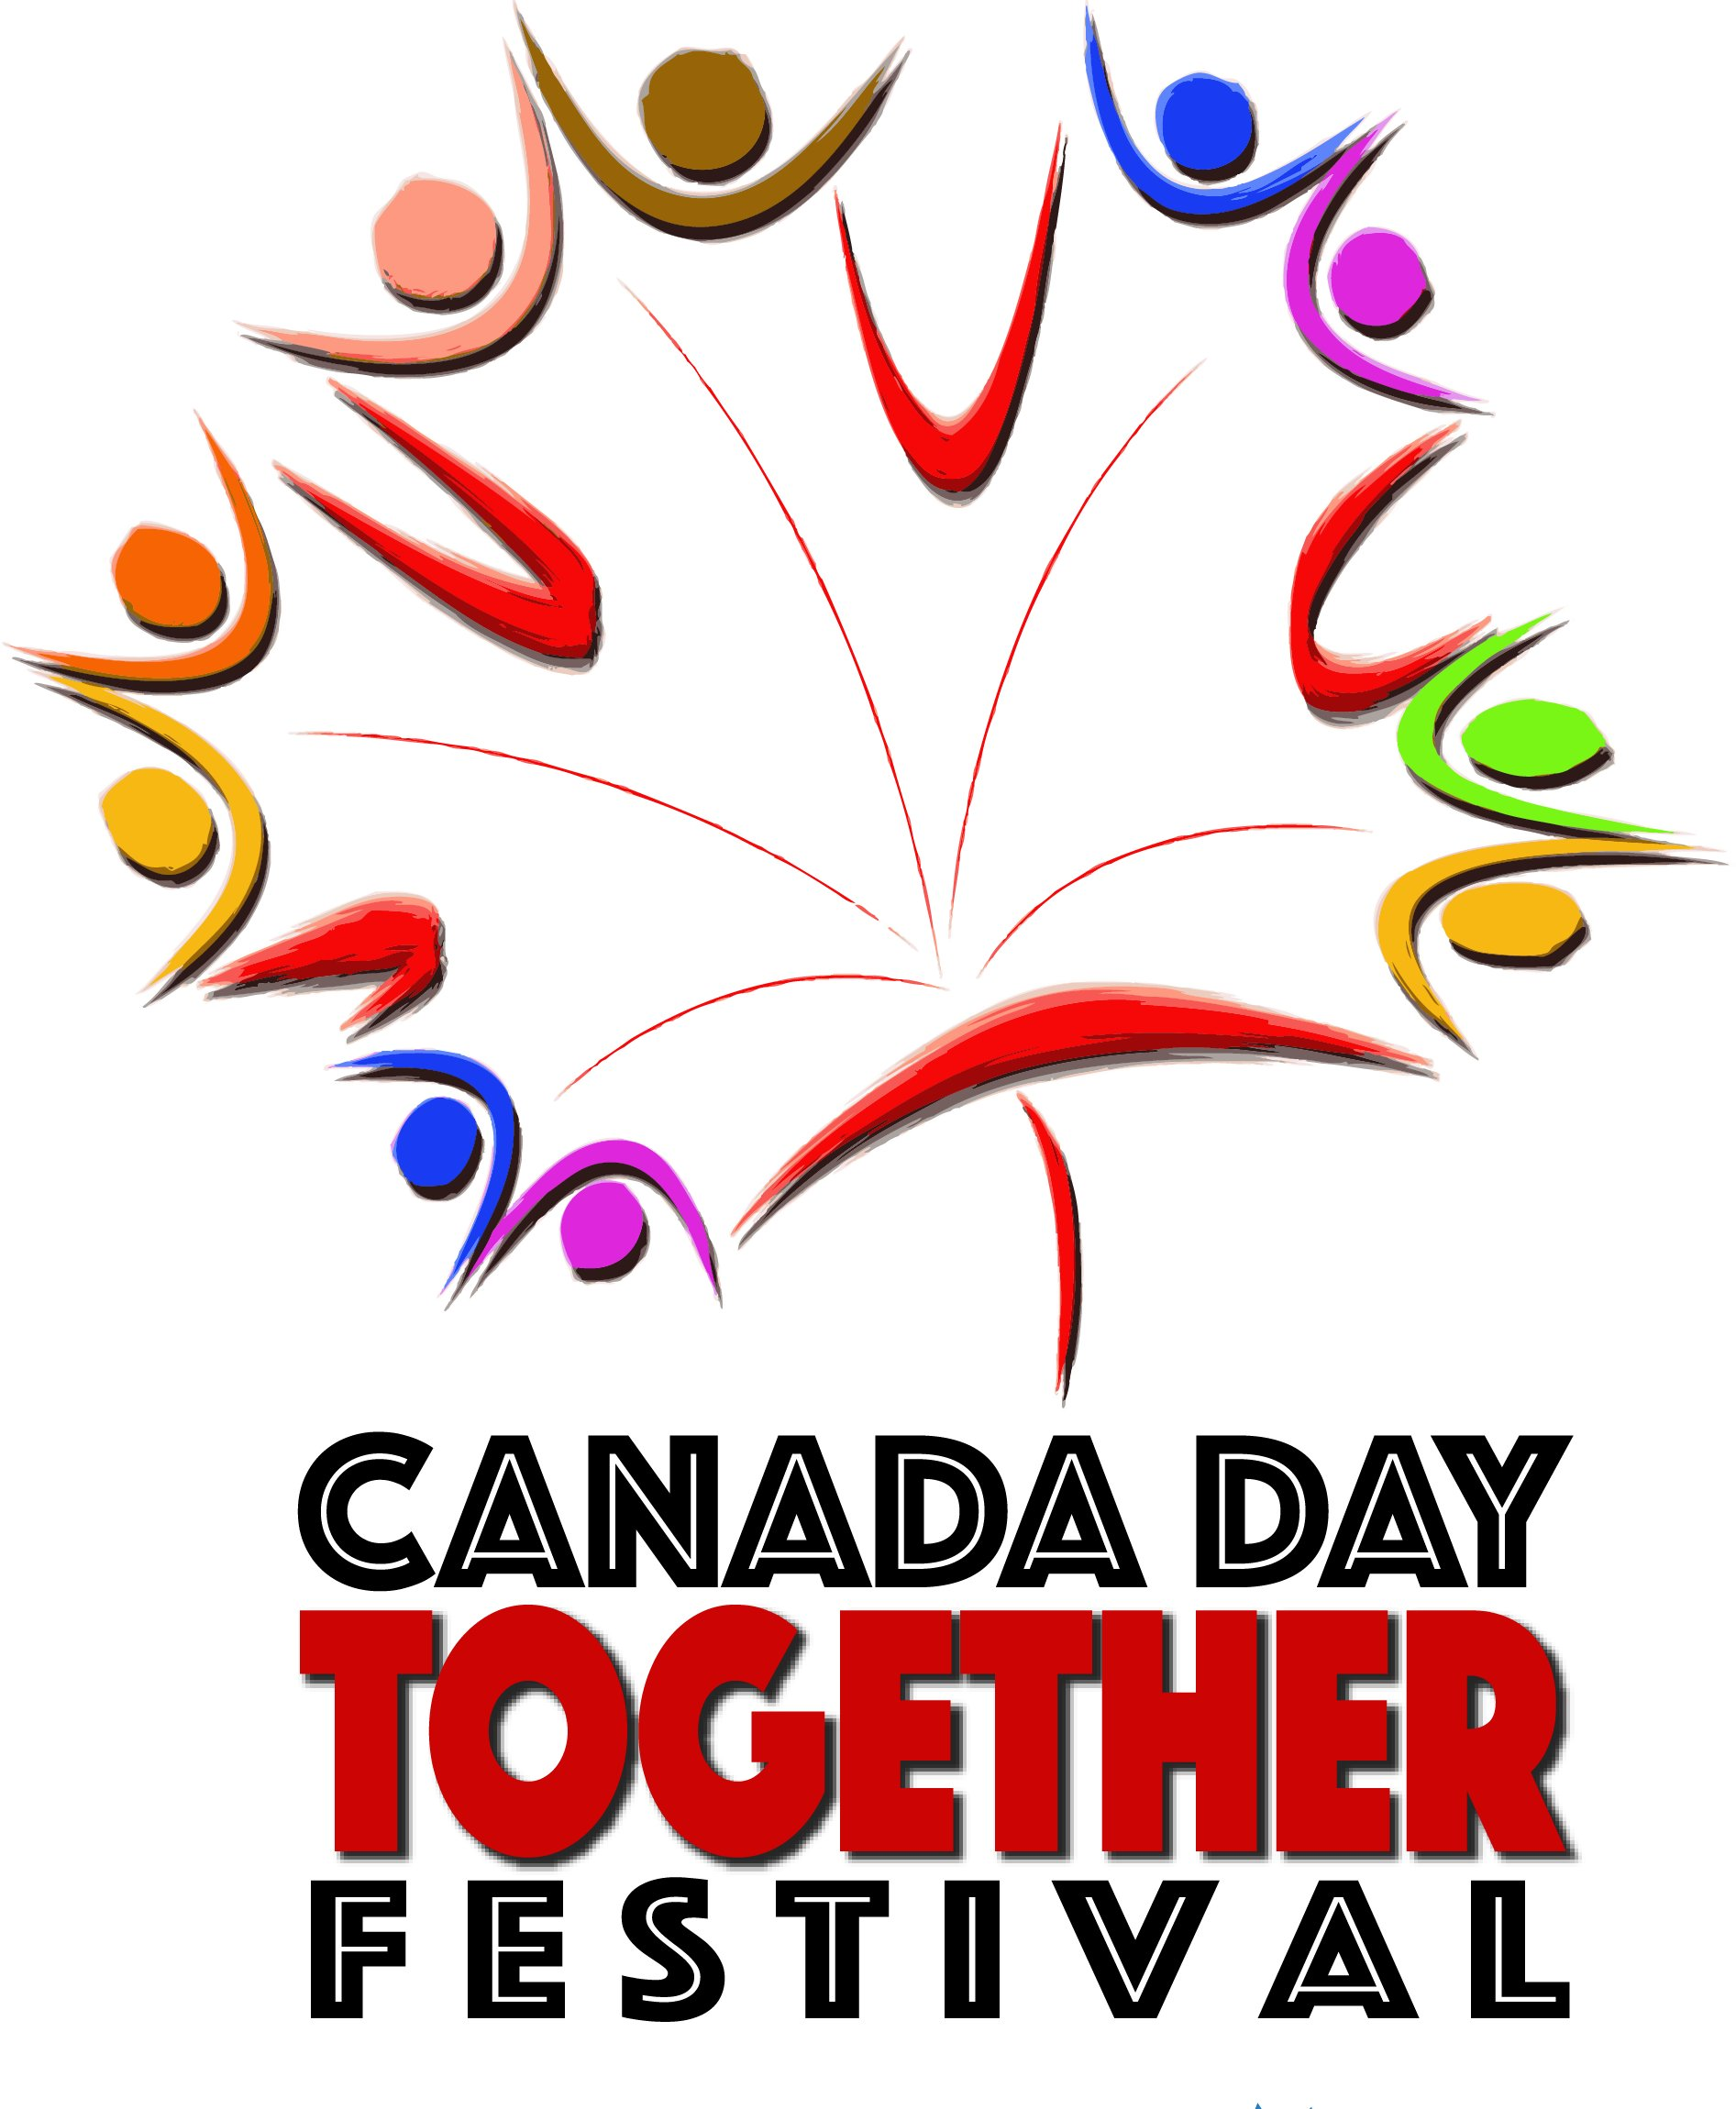 Canada Day Together Festival at Churchill Meadows Community Common Google image from http://canadadaytogether.ca/